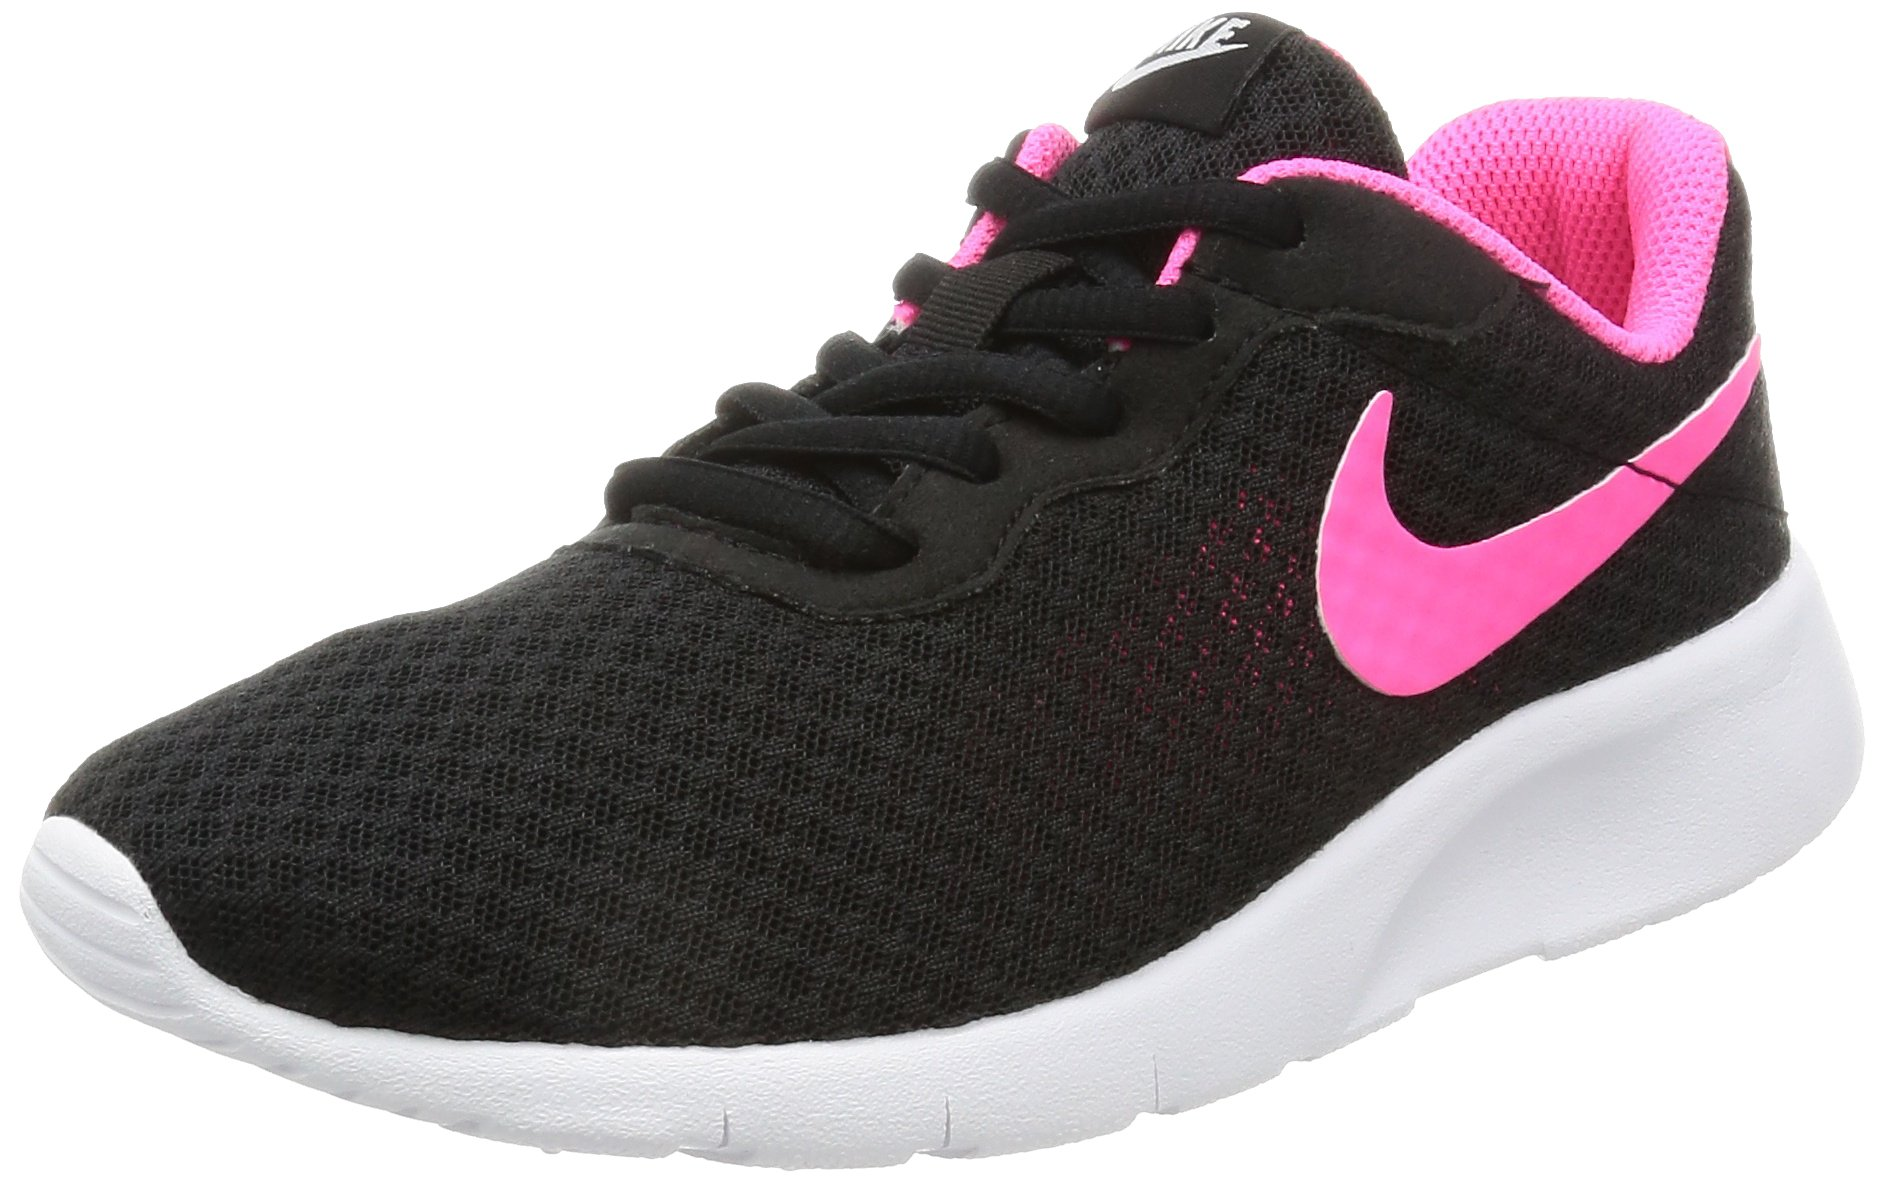 NIKE Kids Tanjun (GS) Black/Hyper Pink White Running Shoe 4 Kids US by Nike (Image #1)